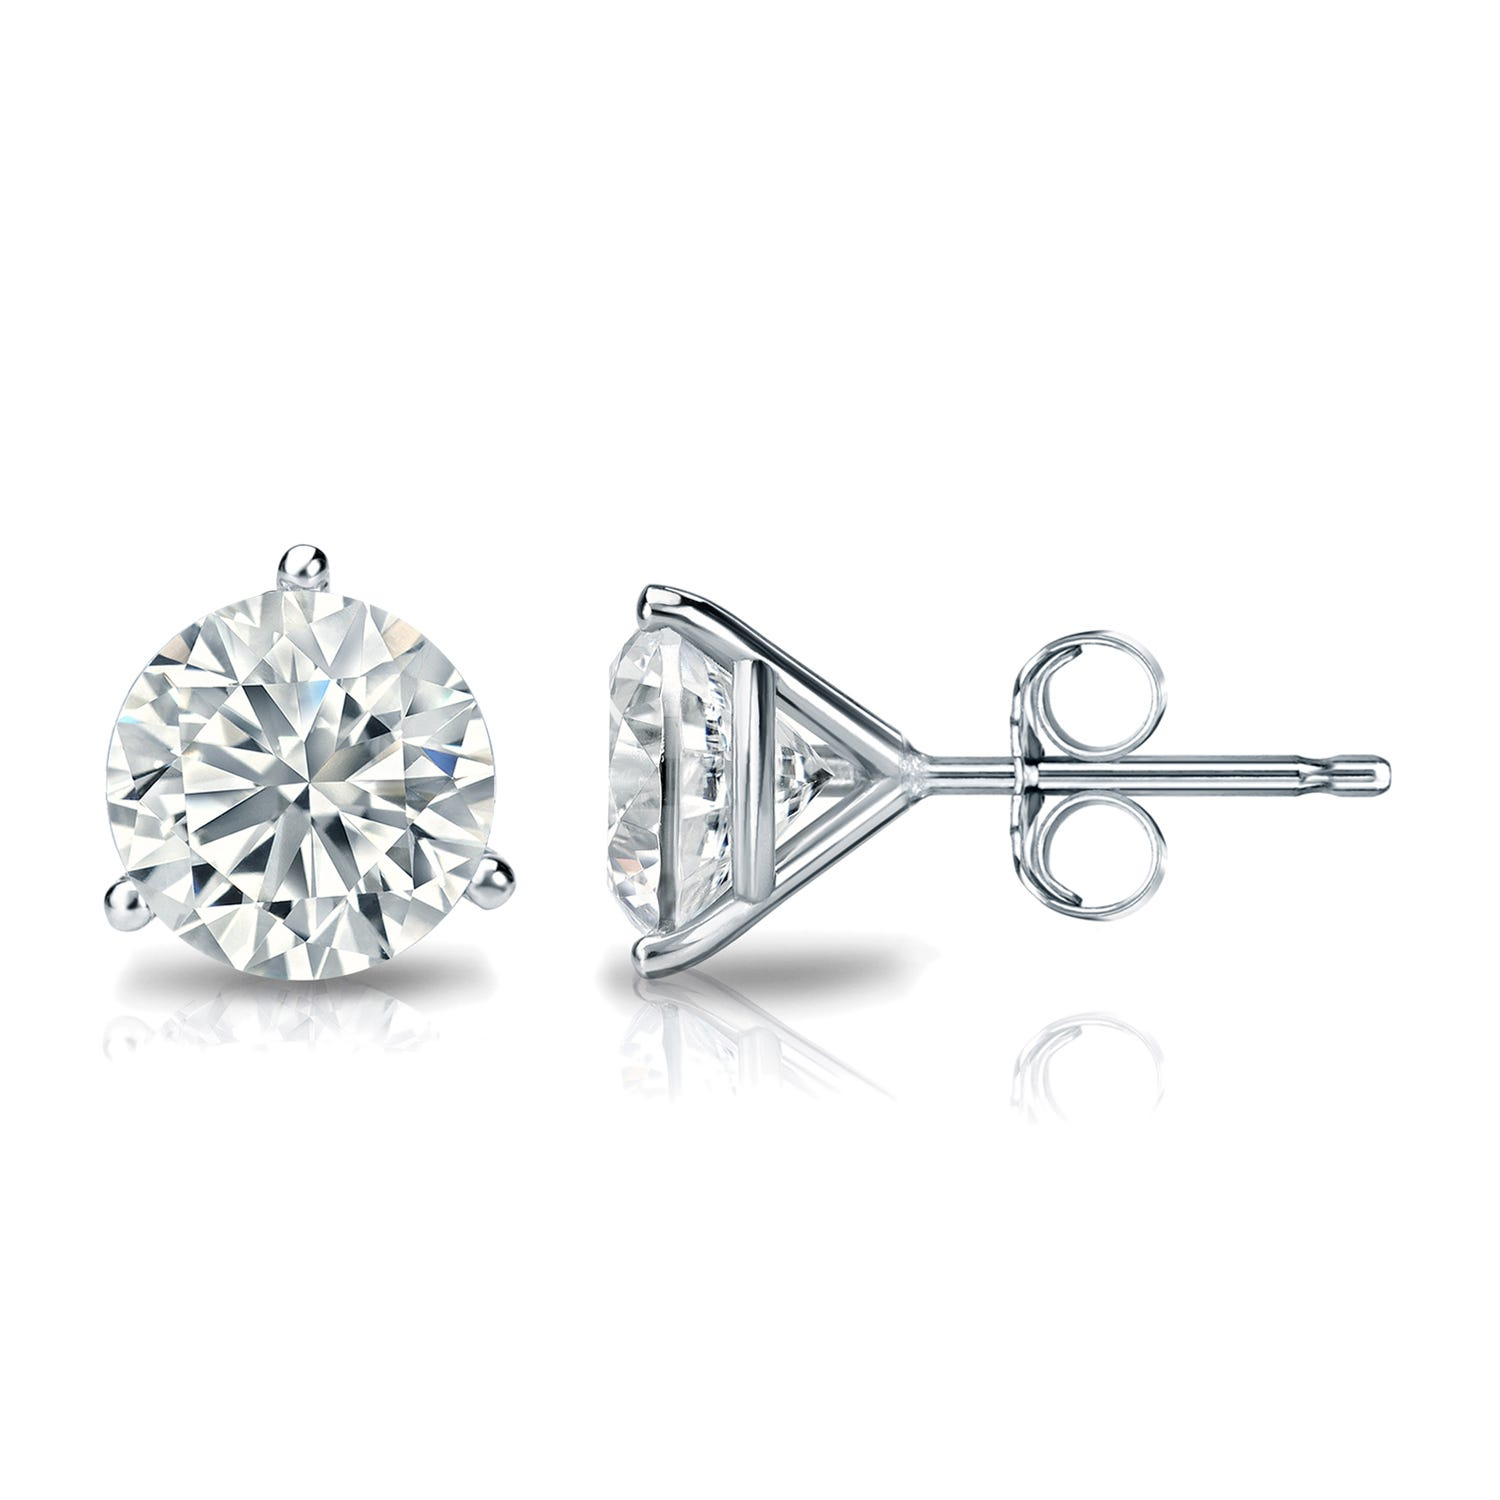 1-1/2 CTTW Round Diamond Solitaire Stud Earrings IJ I1 in 18K White Gold IGI Certified 3-Prong Setting